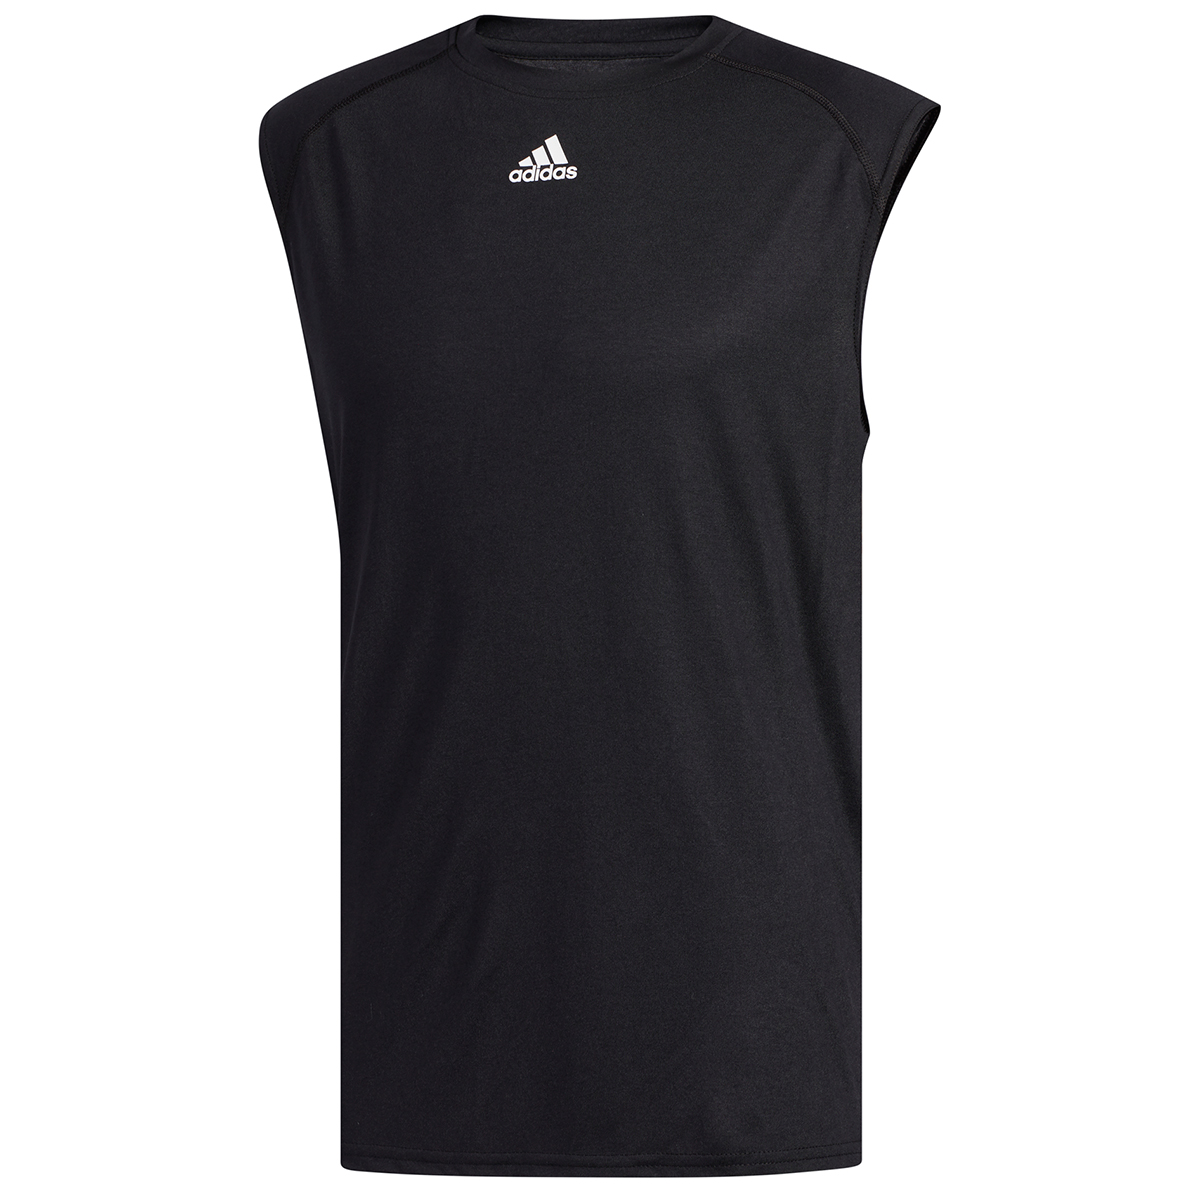 Adidas Men's Climalite Sleeveless Tee - Black, XXL